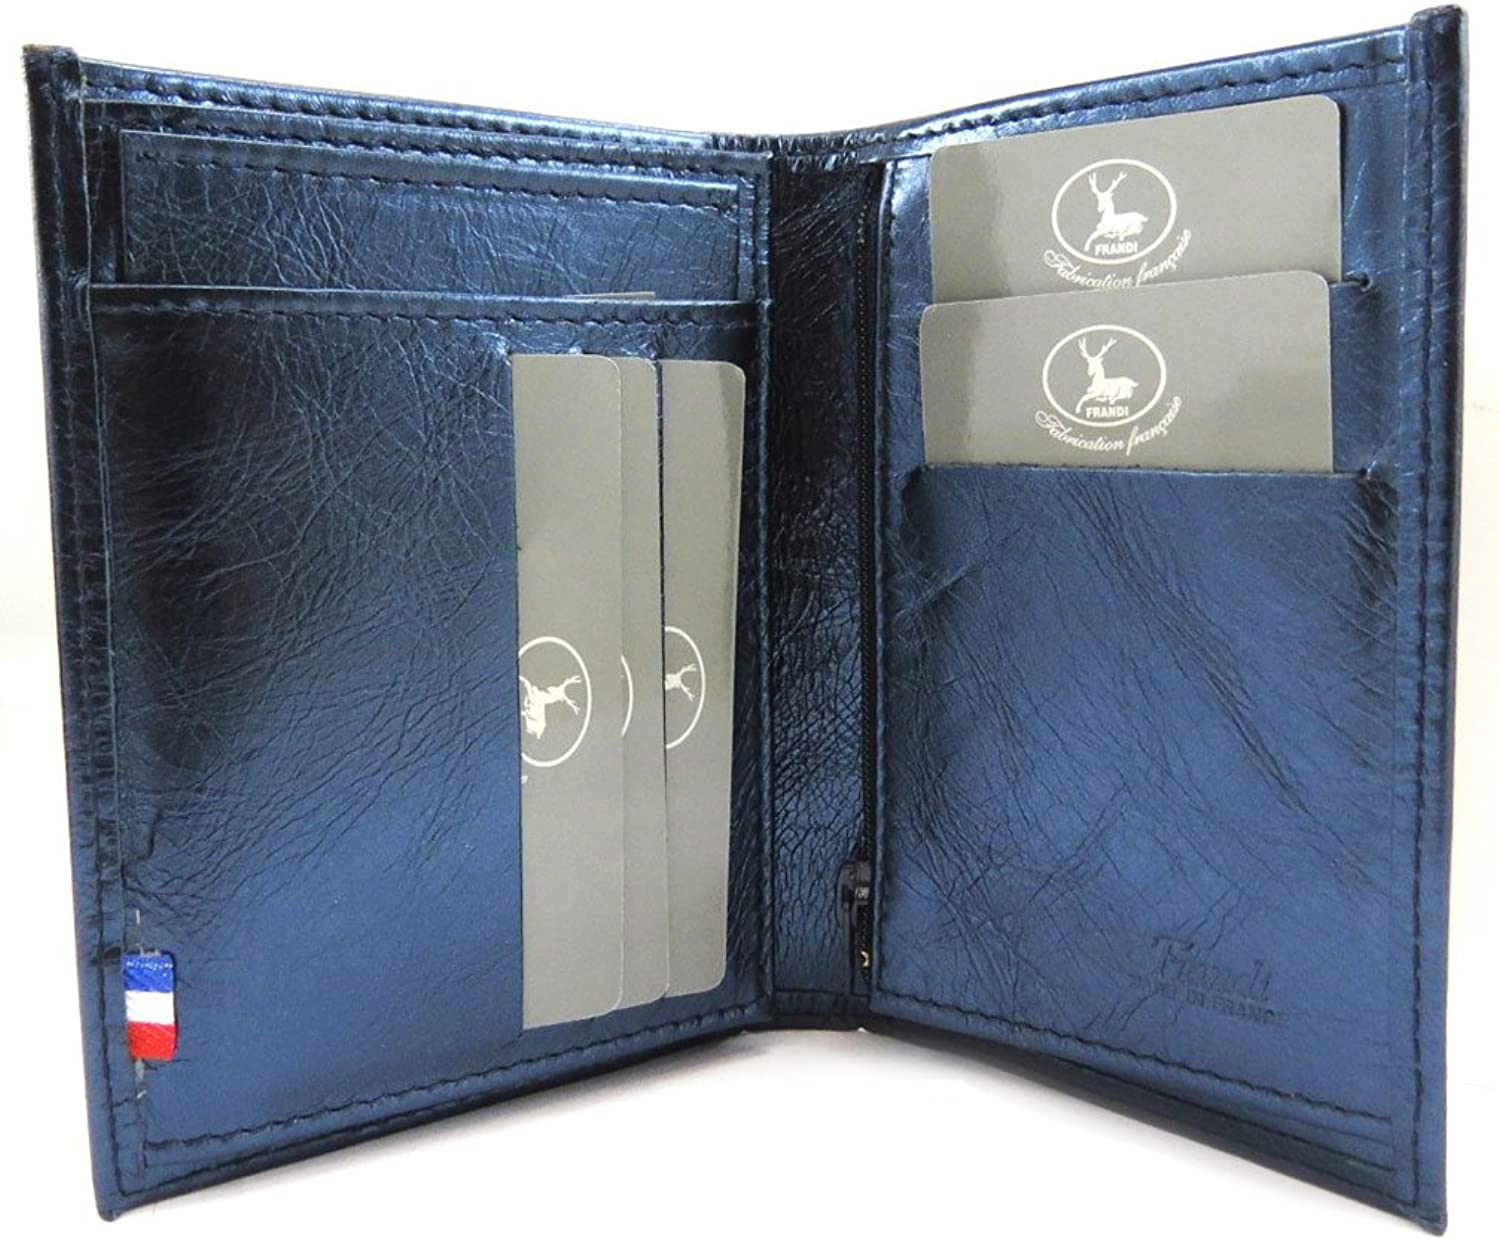 European leather wallet 'Frandi' dark bluee metal.